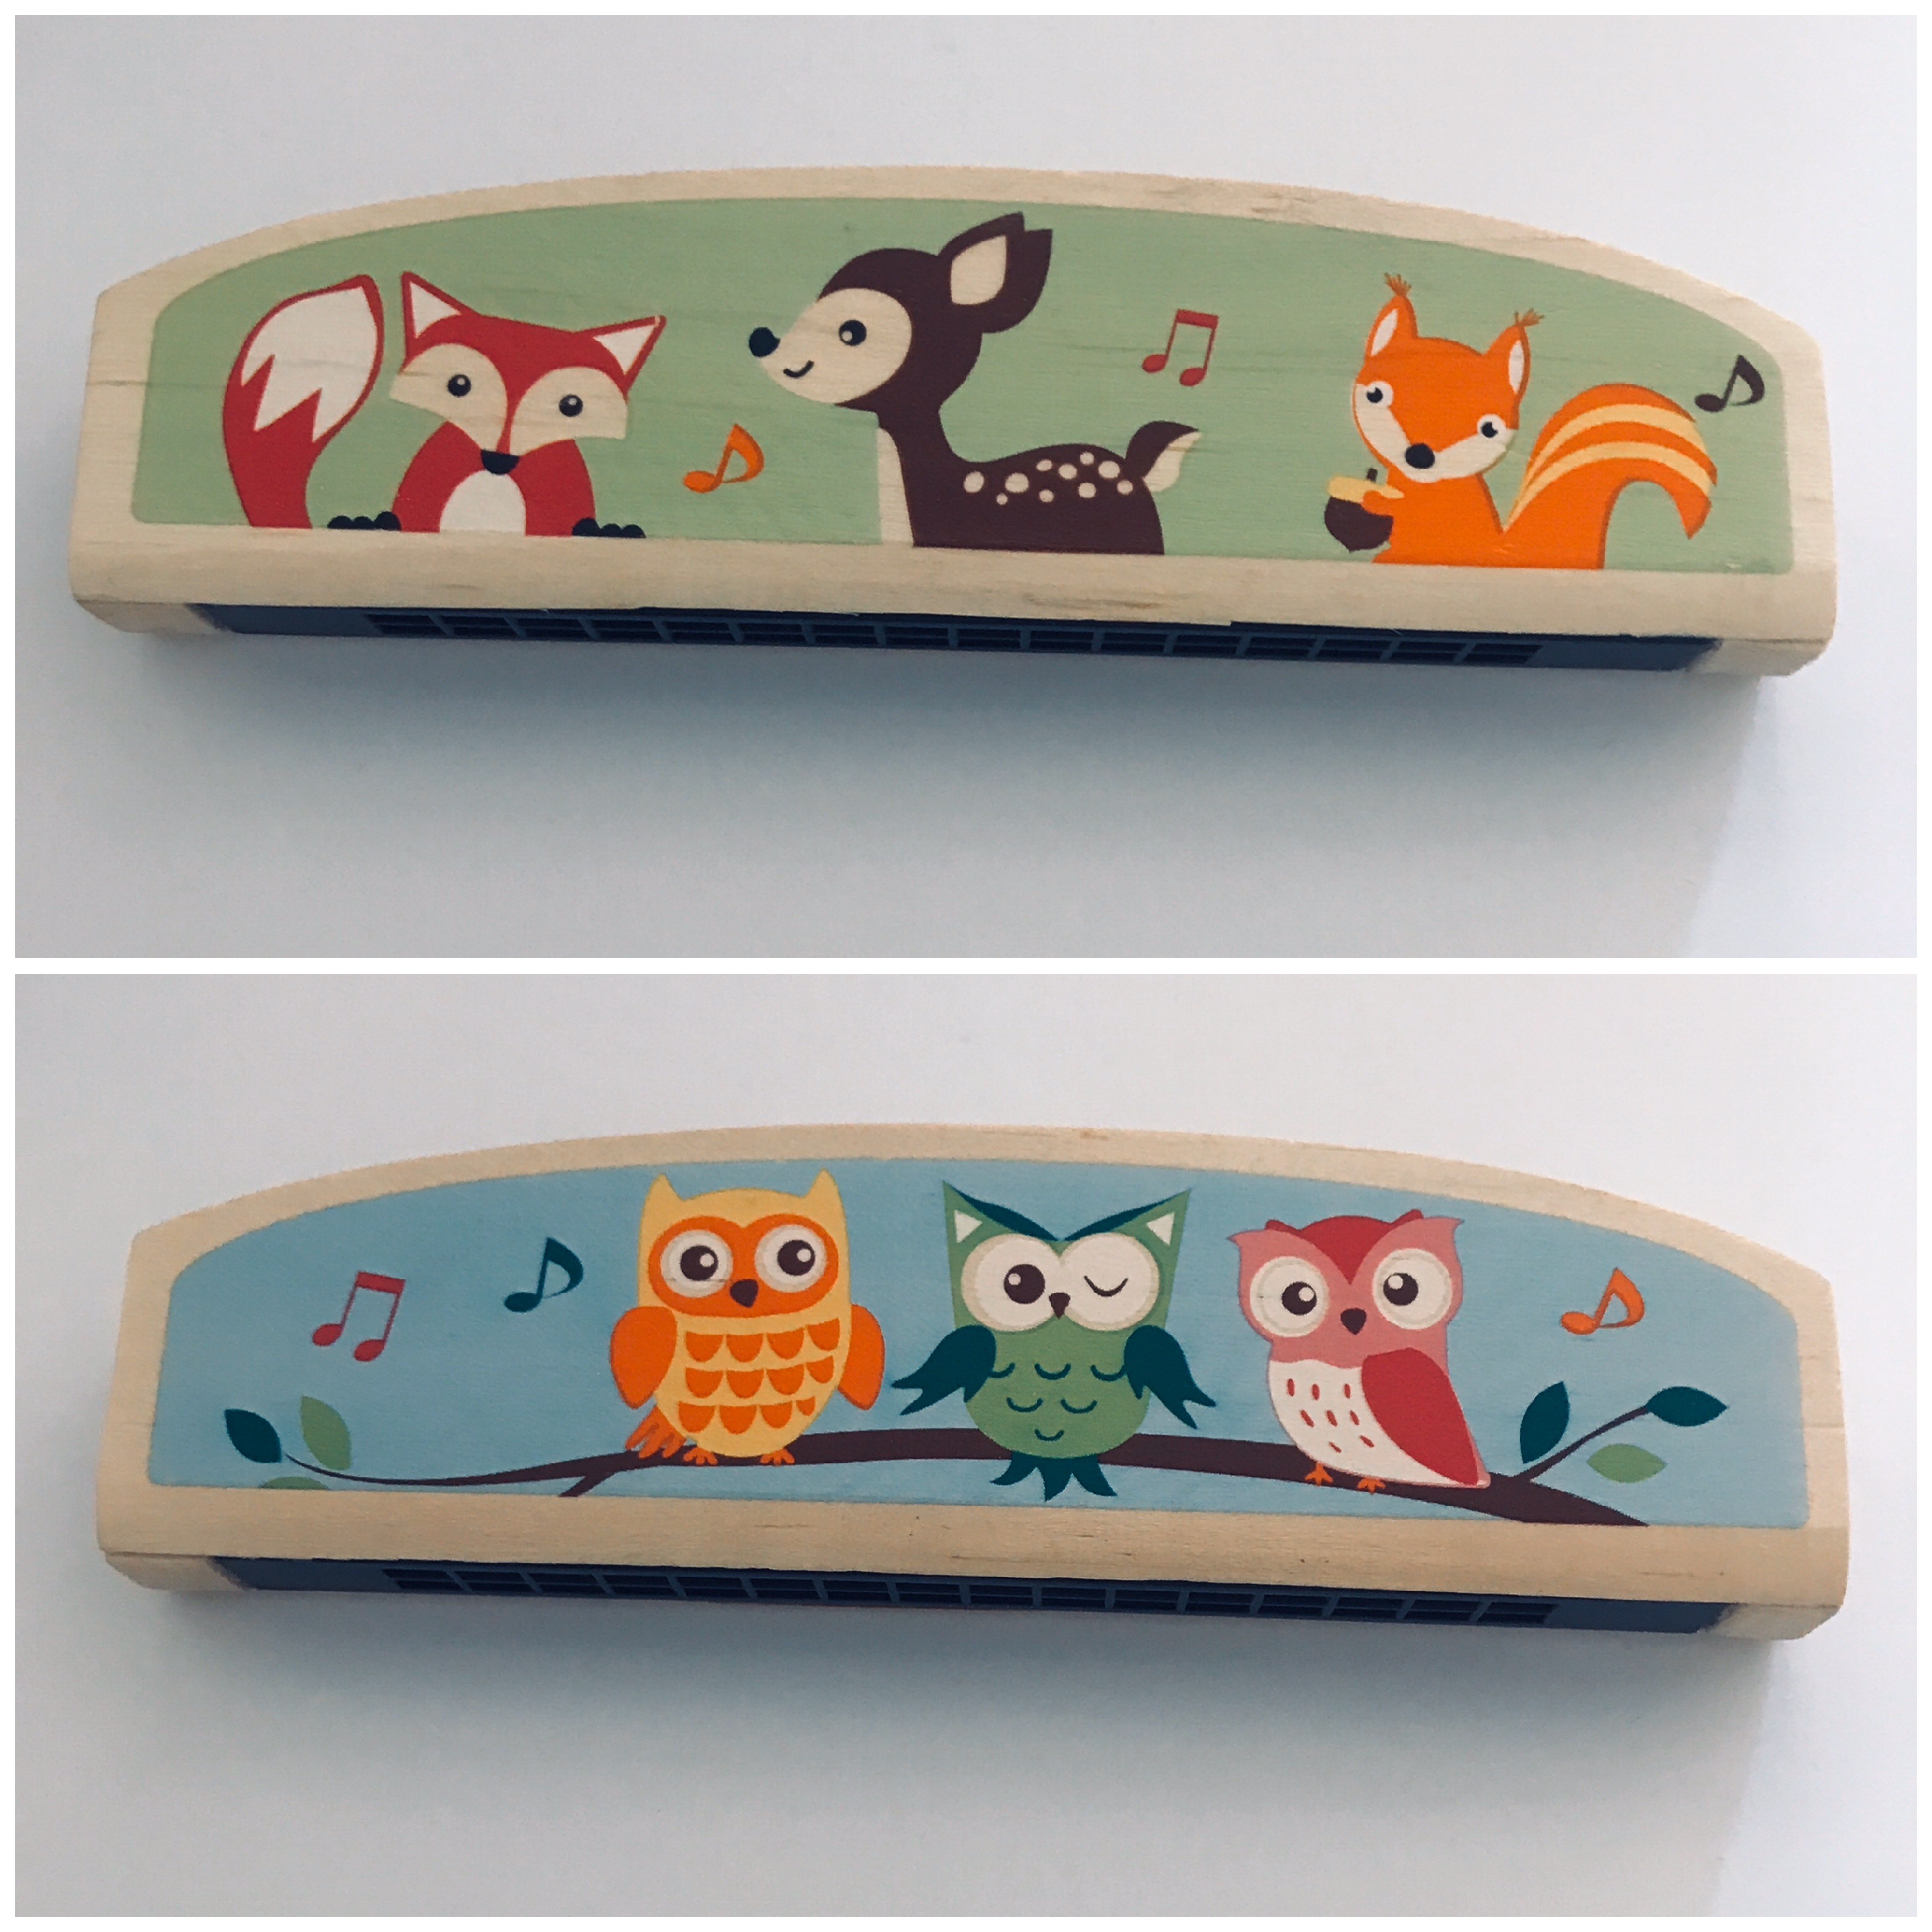 Kaper Kidz Wooden Harmonica in Forest Friends Designs (Fox/Owl)